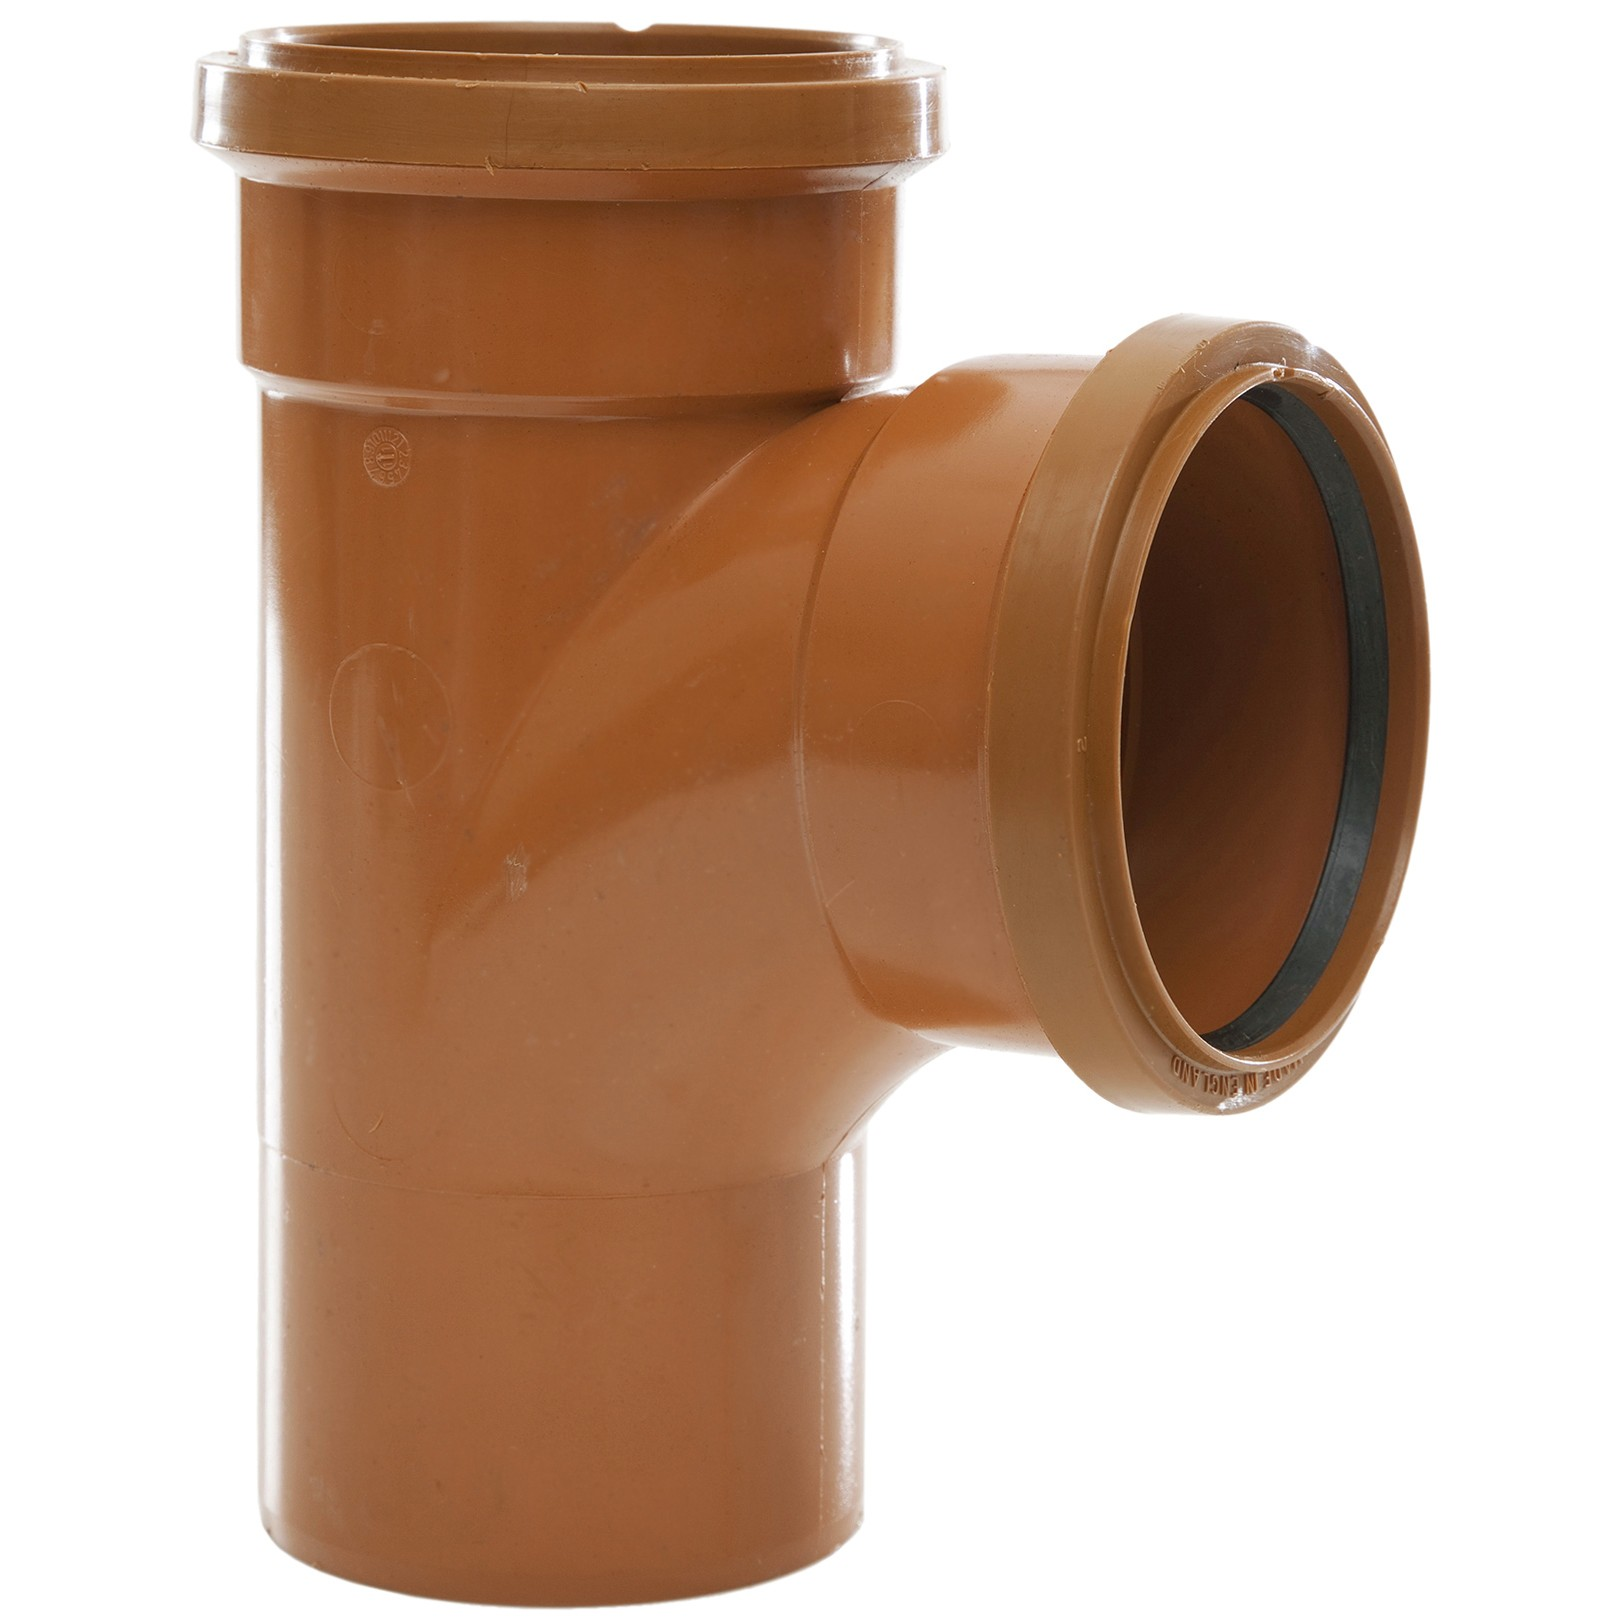 Polypipe 82mm Underground 87.5 Degree Double Socket Equal Junction - Terracotta